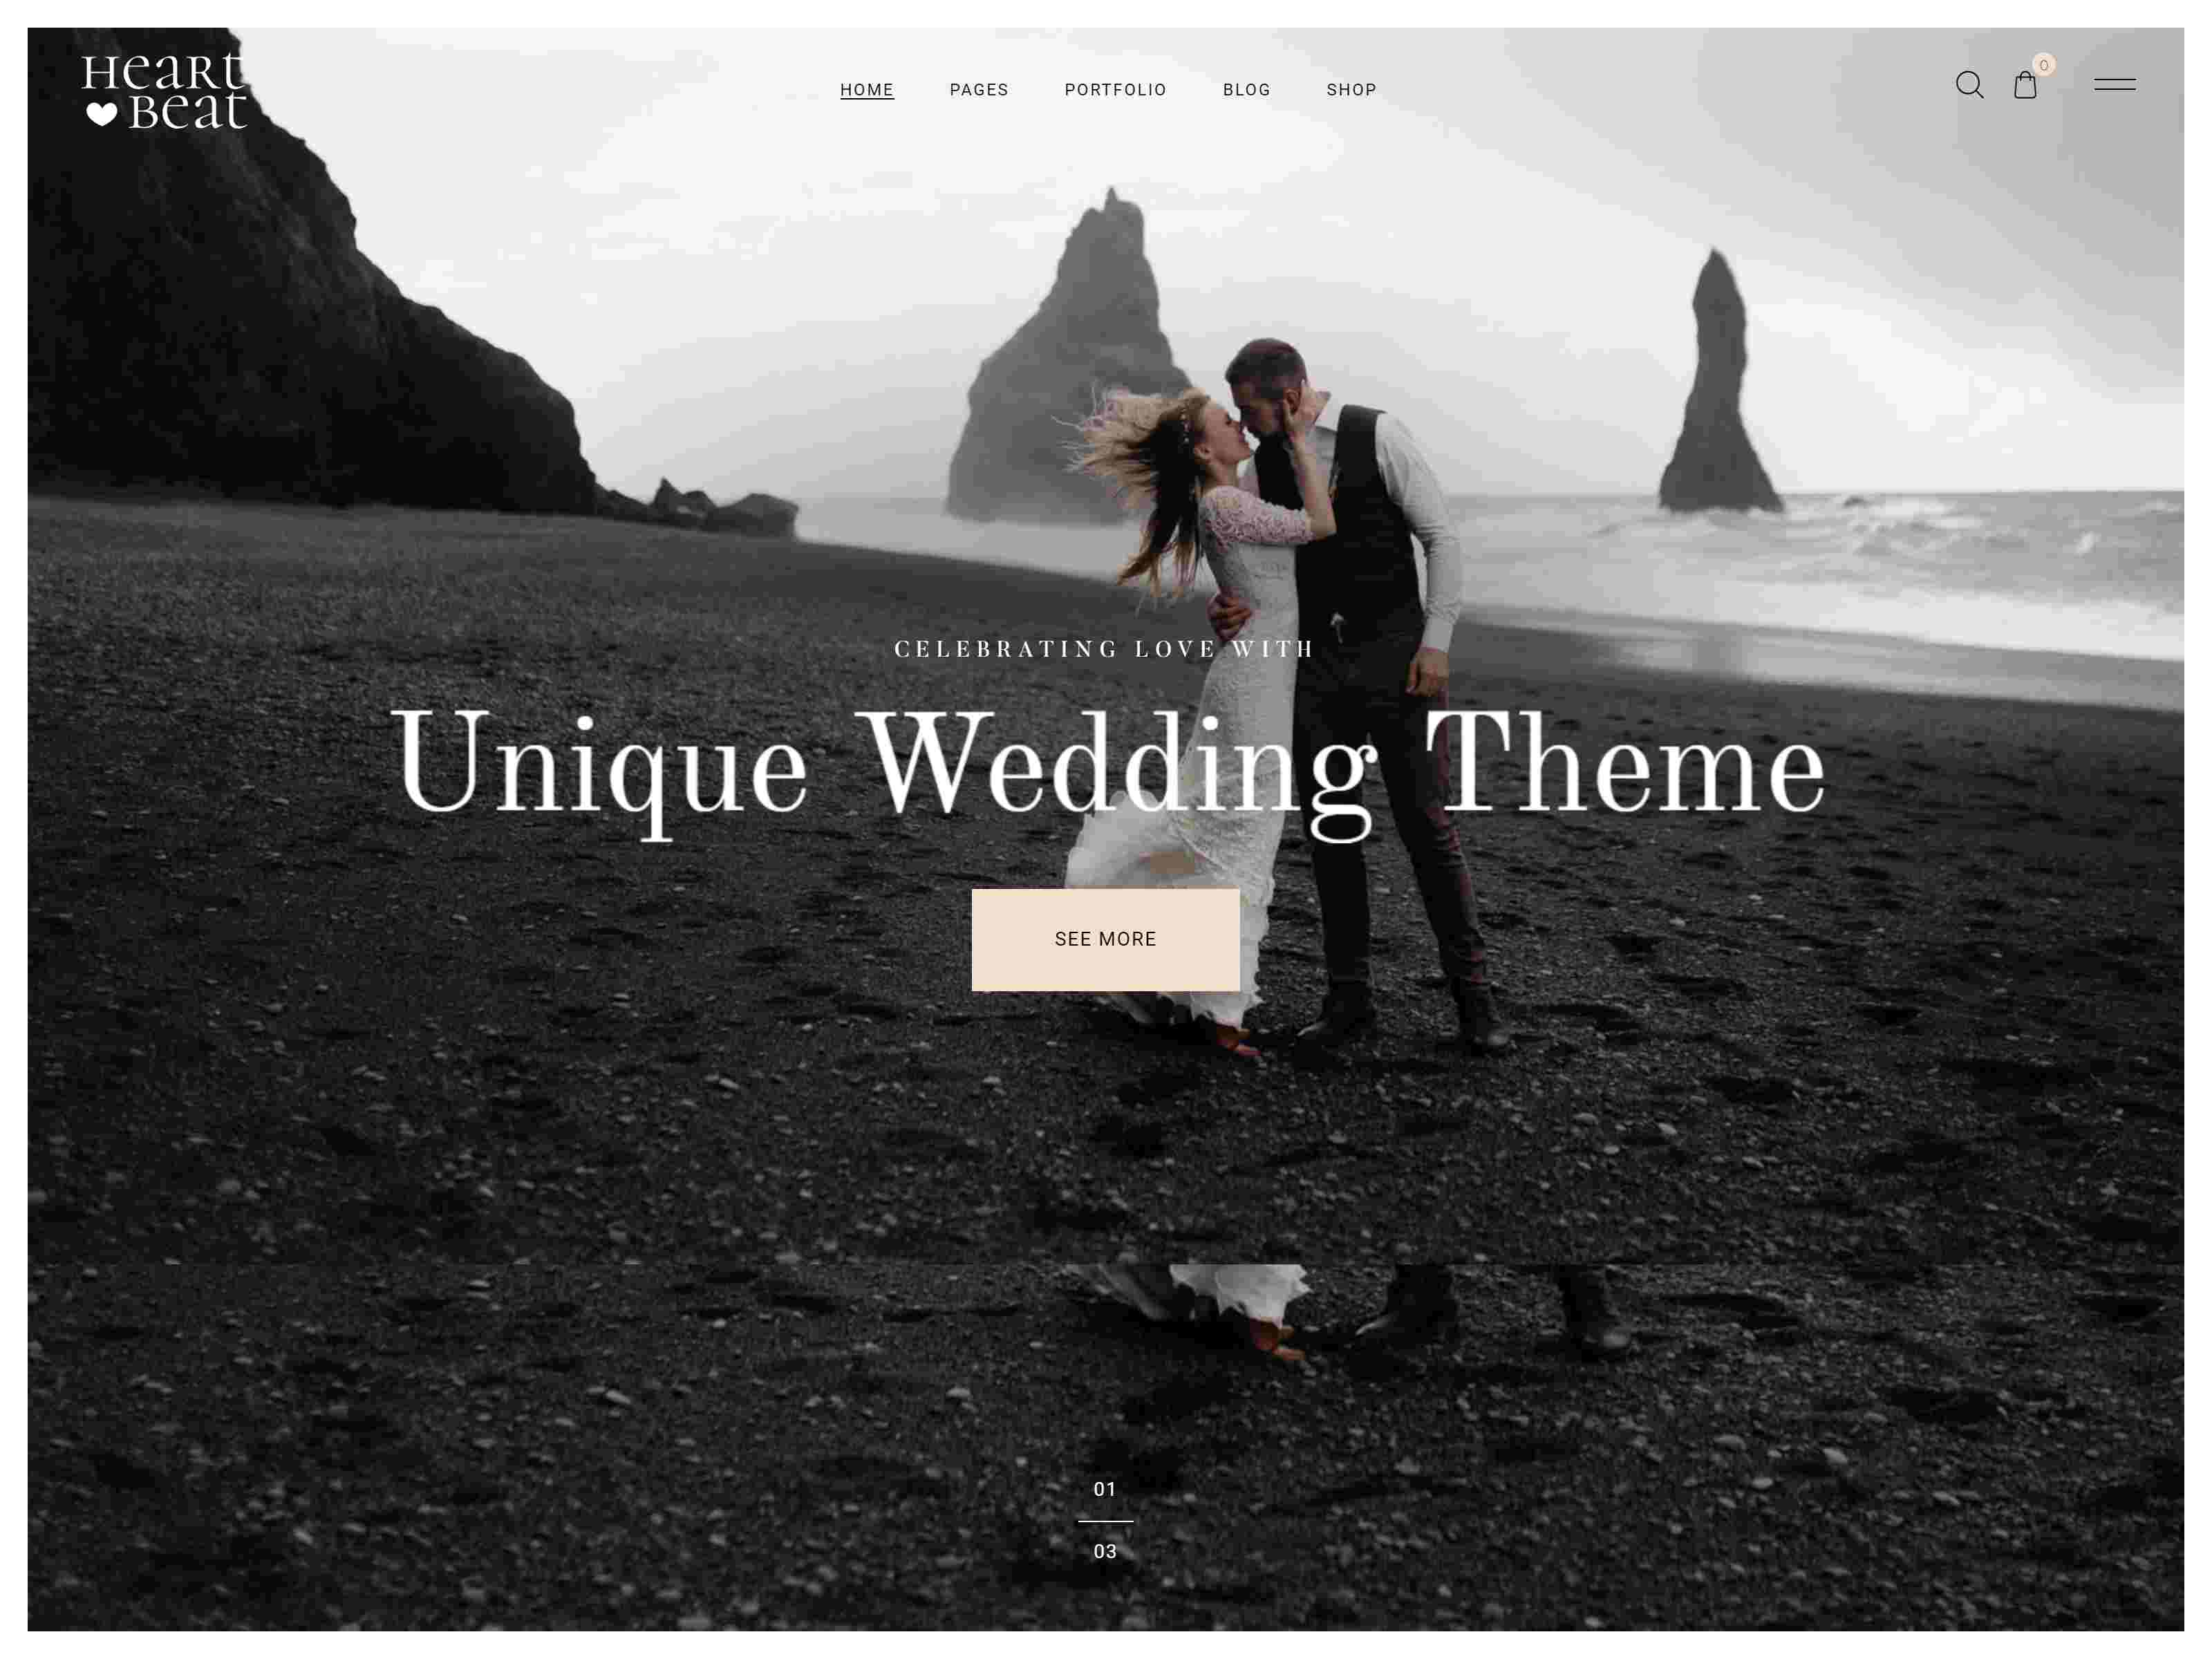 Heartbeat - Wedding and Event Planner WordPress Theme